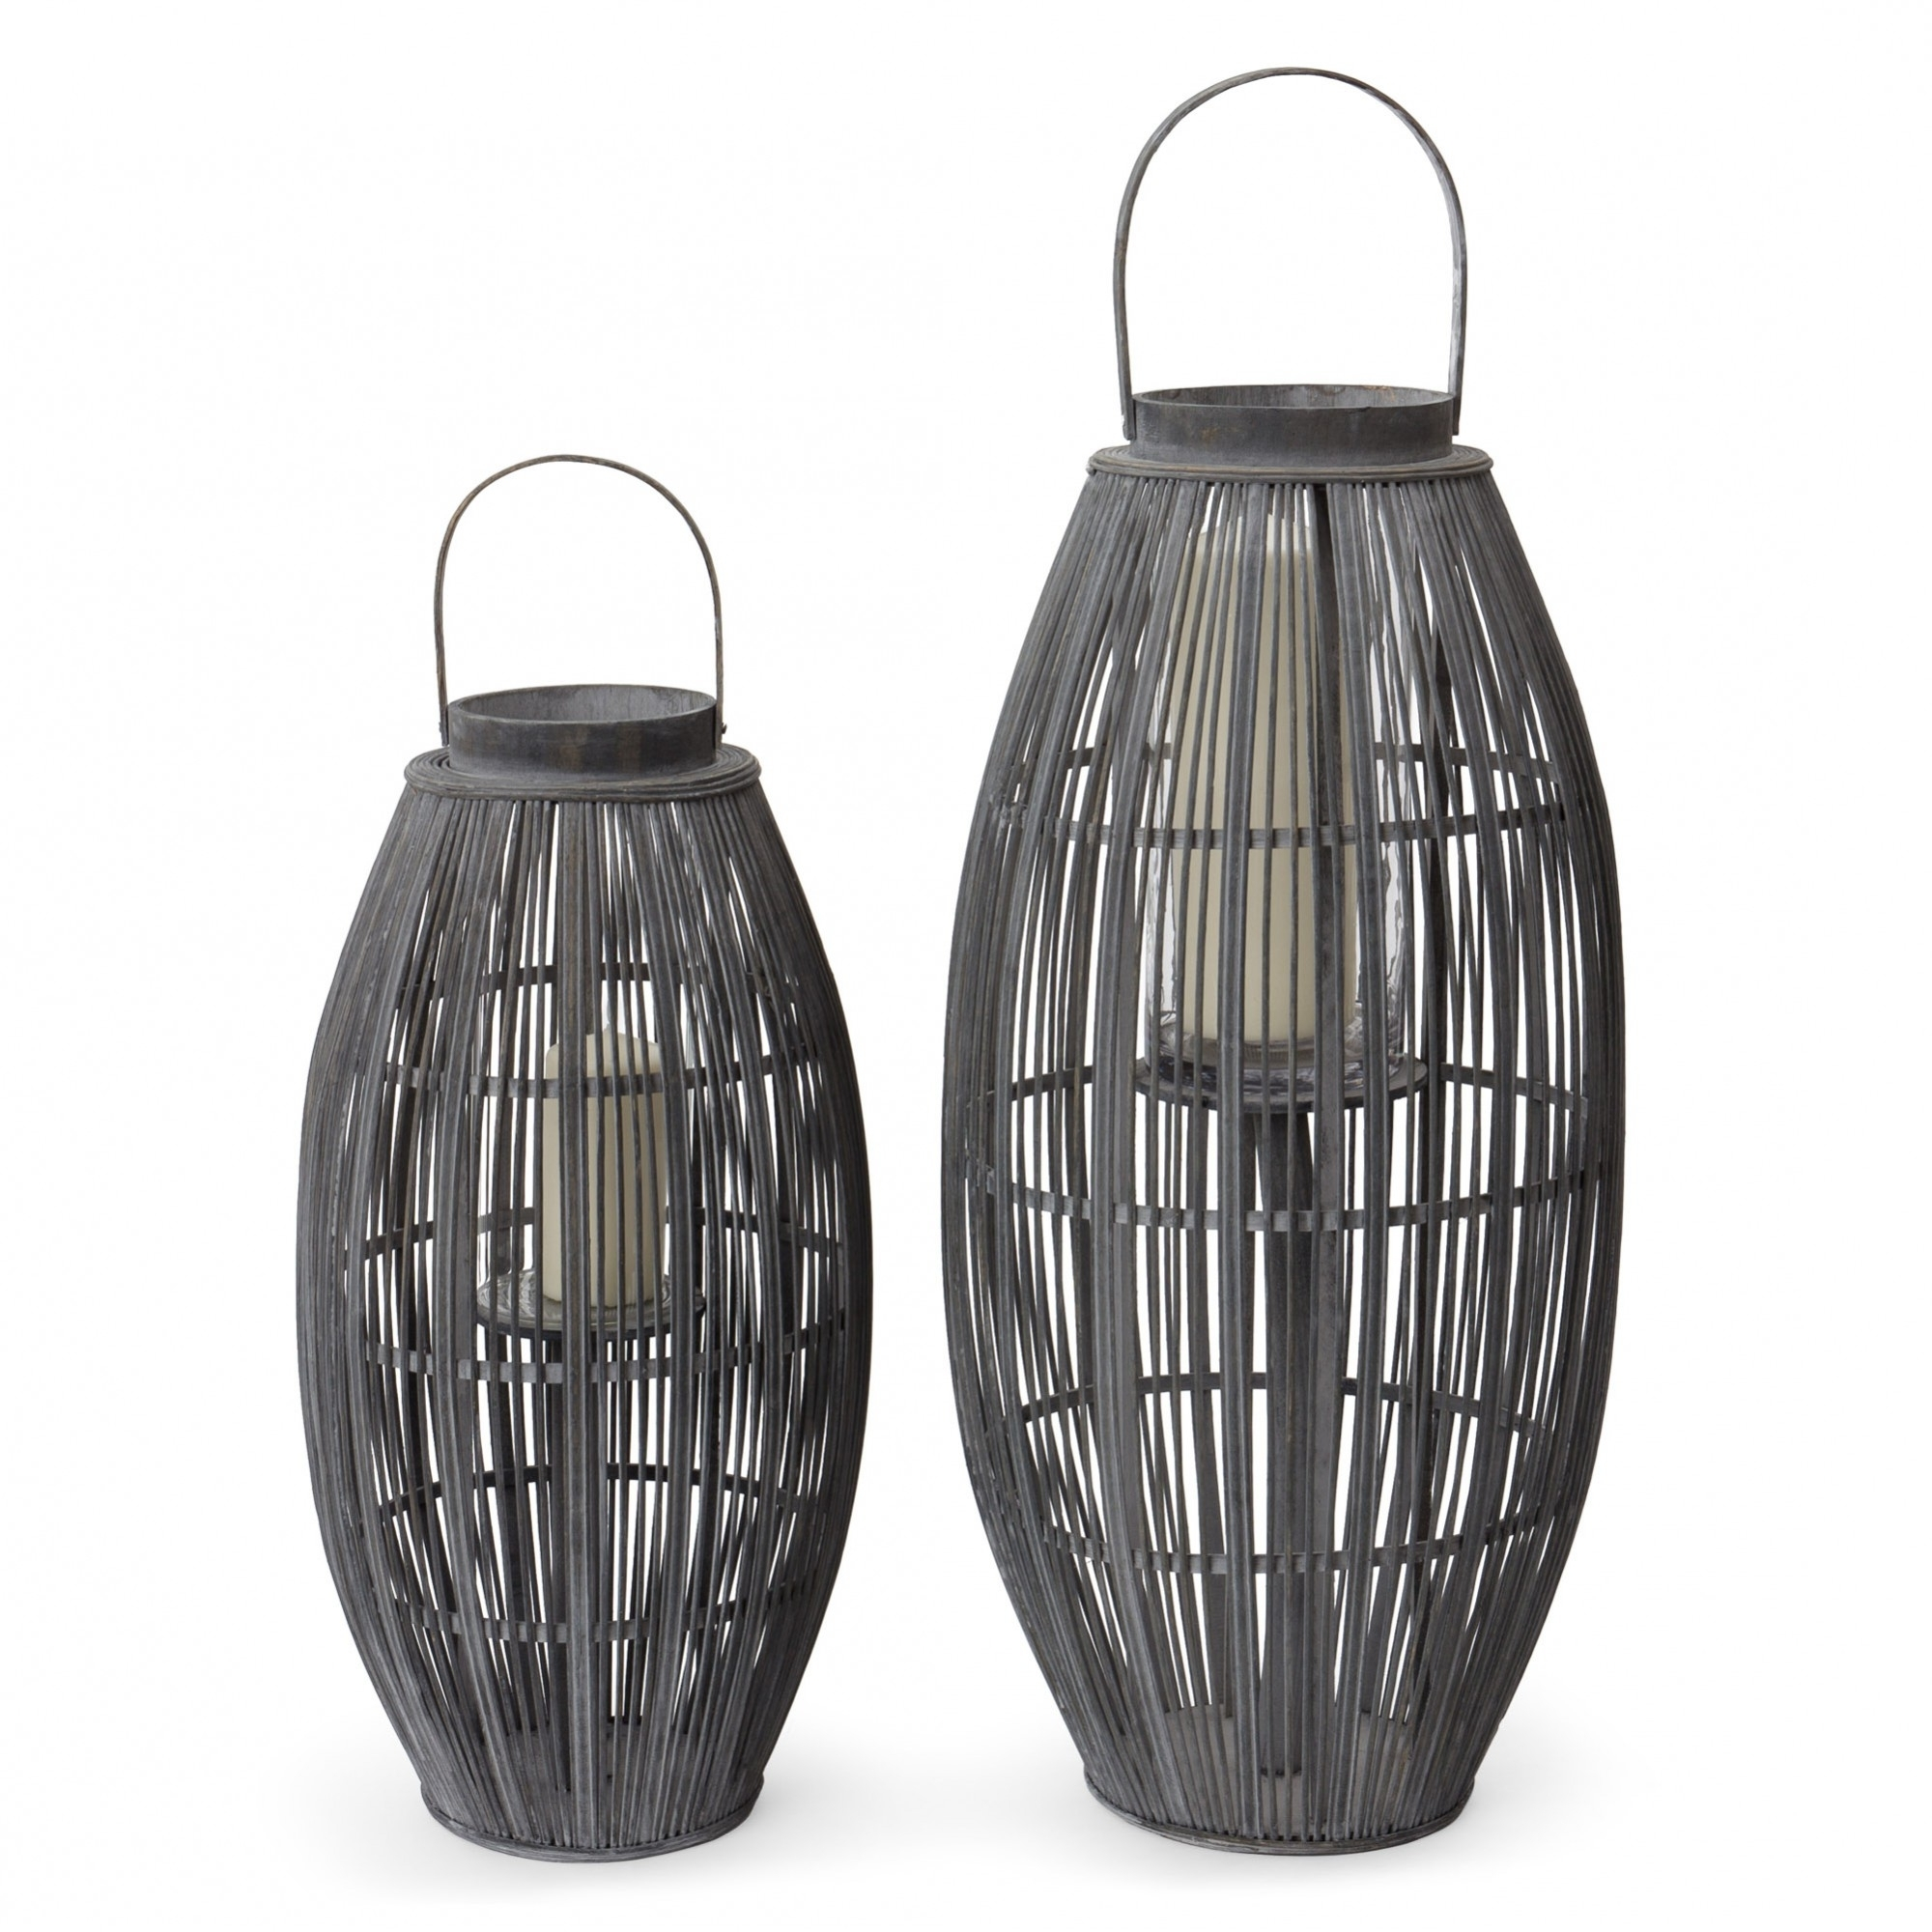 Niya Garden Lantern, Light Grey With Large Cage Design Intended For Best And Newest Outdoor Bamboo Lanterns (View 11 of 20)